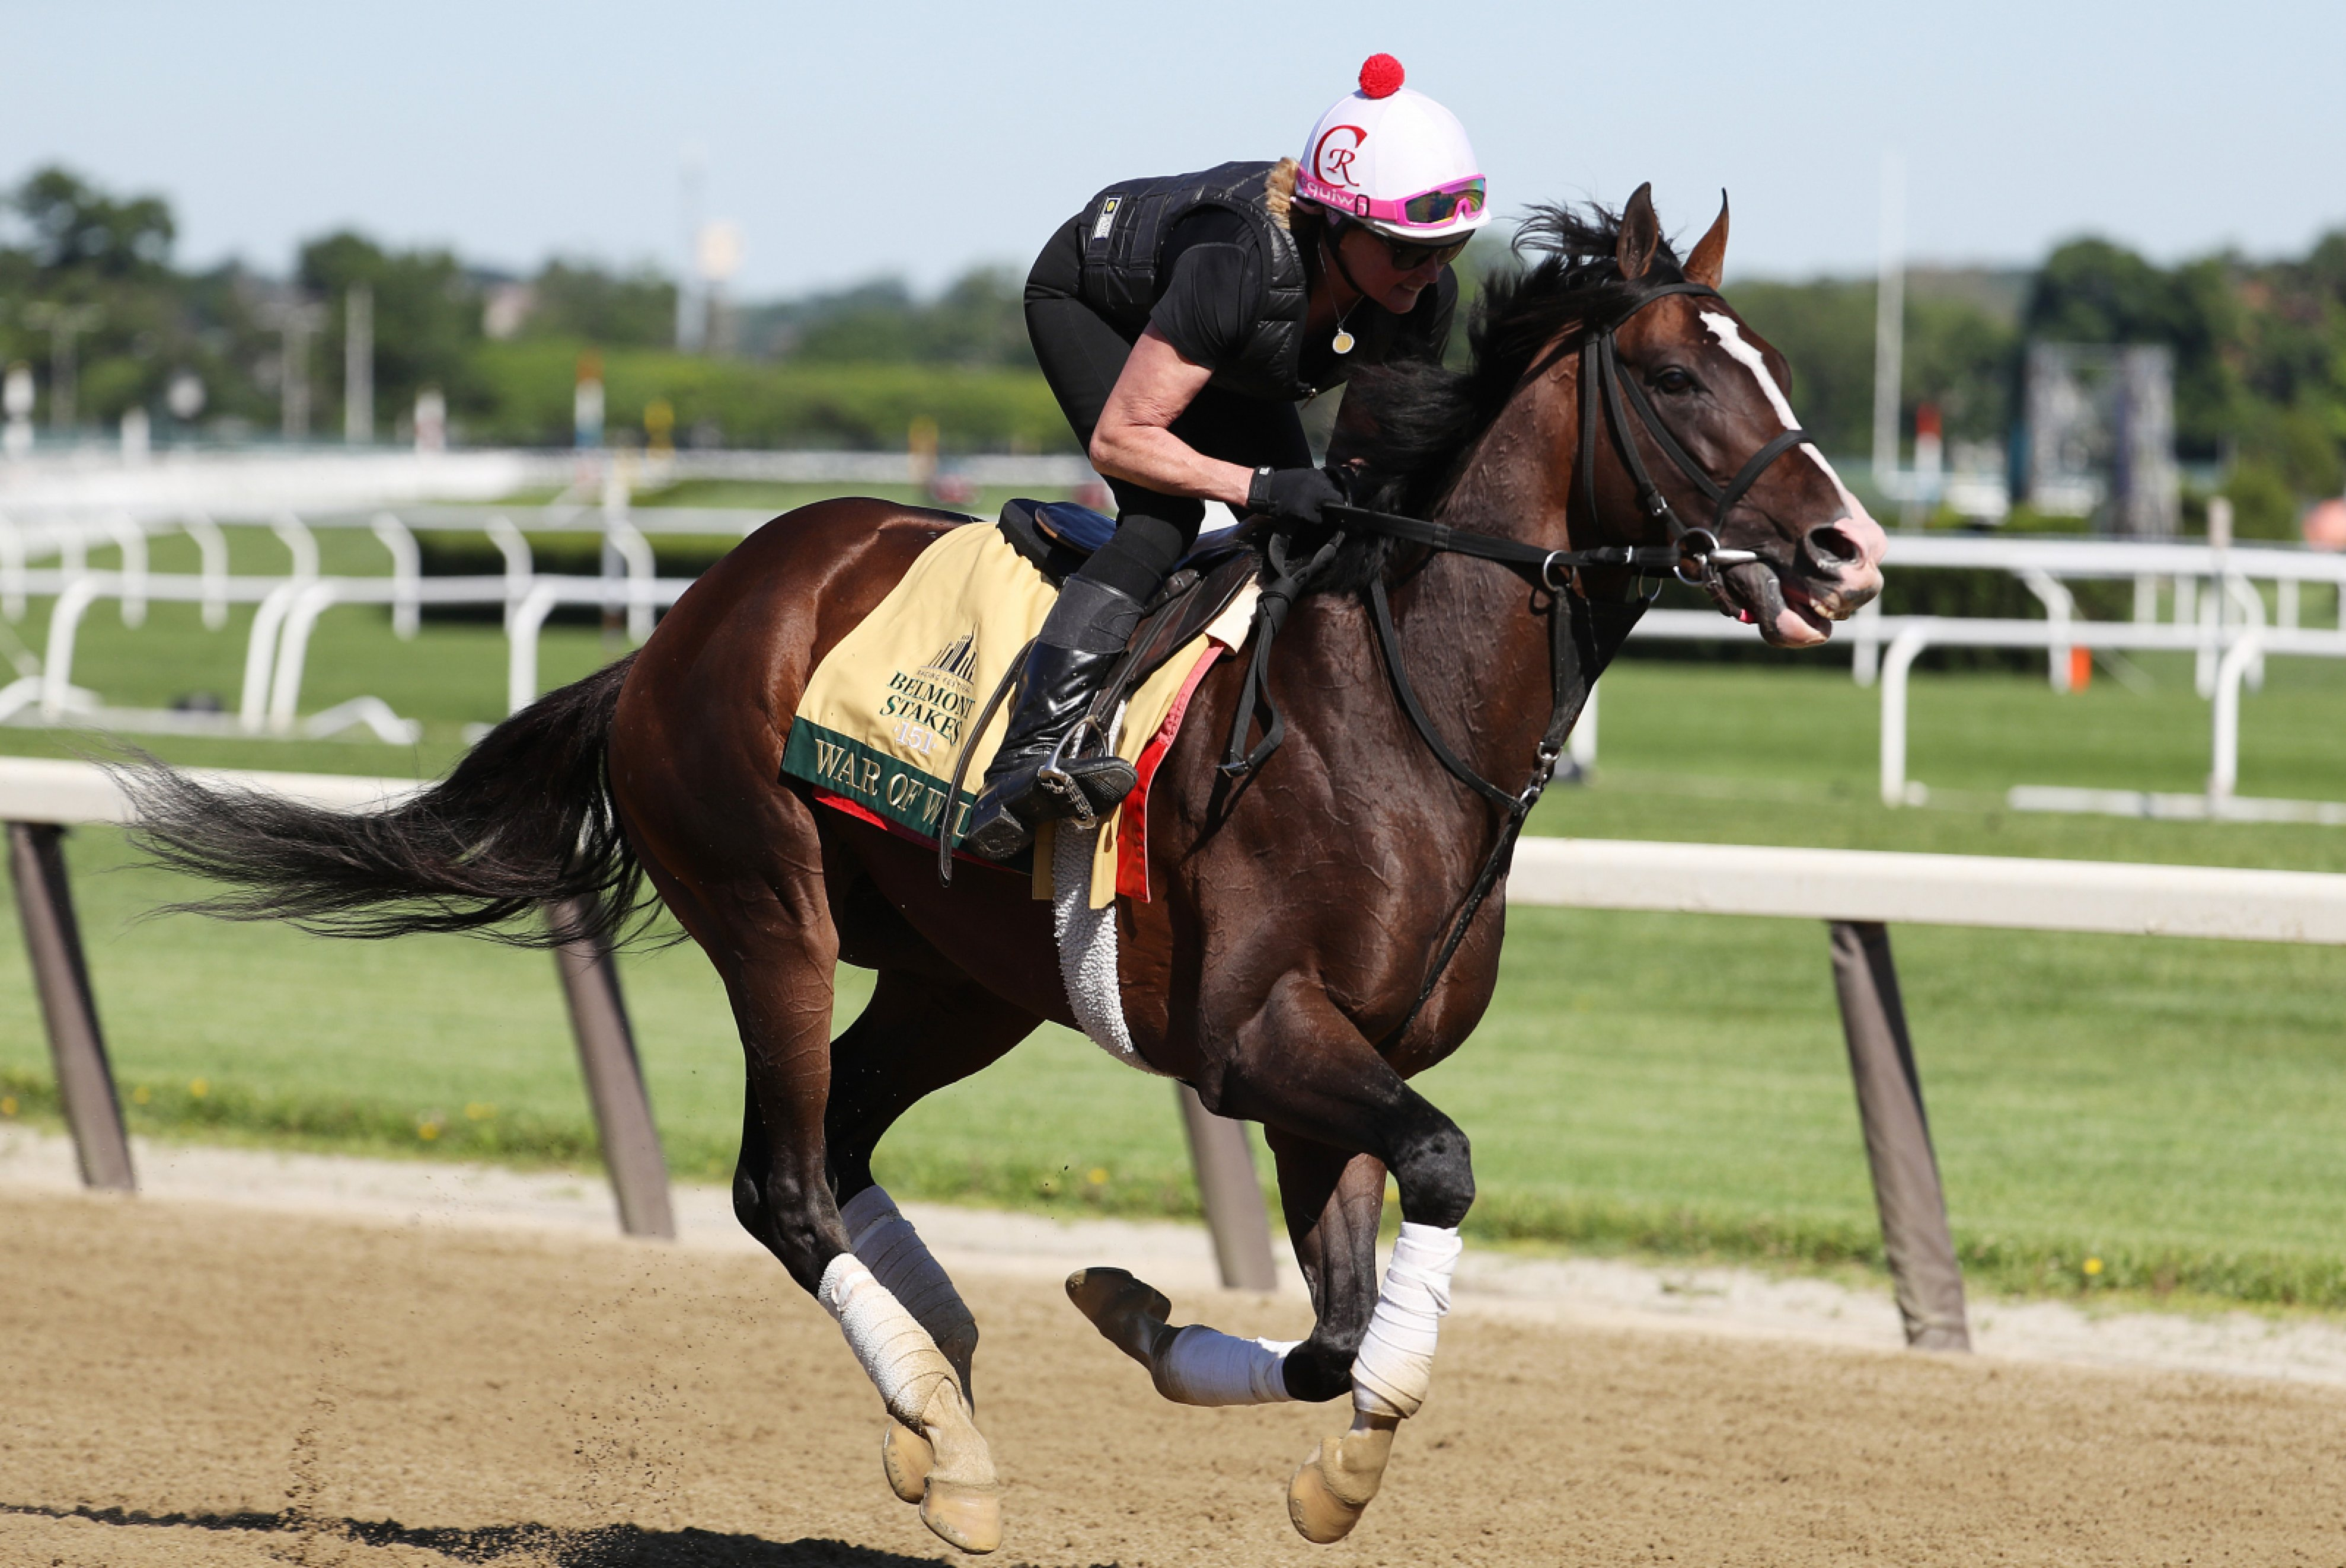 Belmont Stakes: Start Time, TV Channel, Live Stream, Post